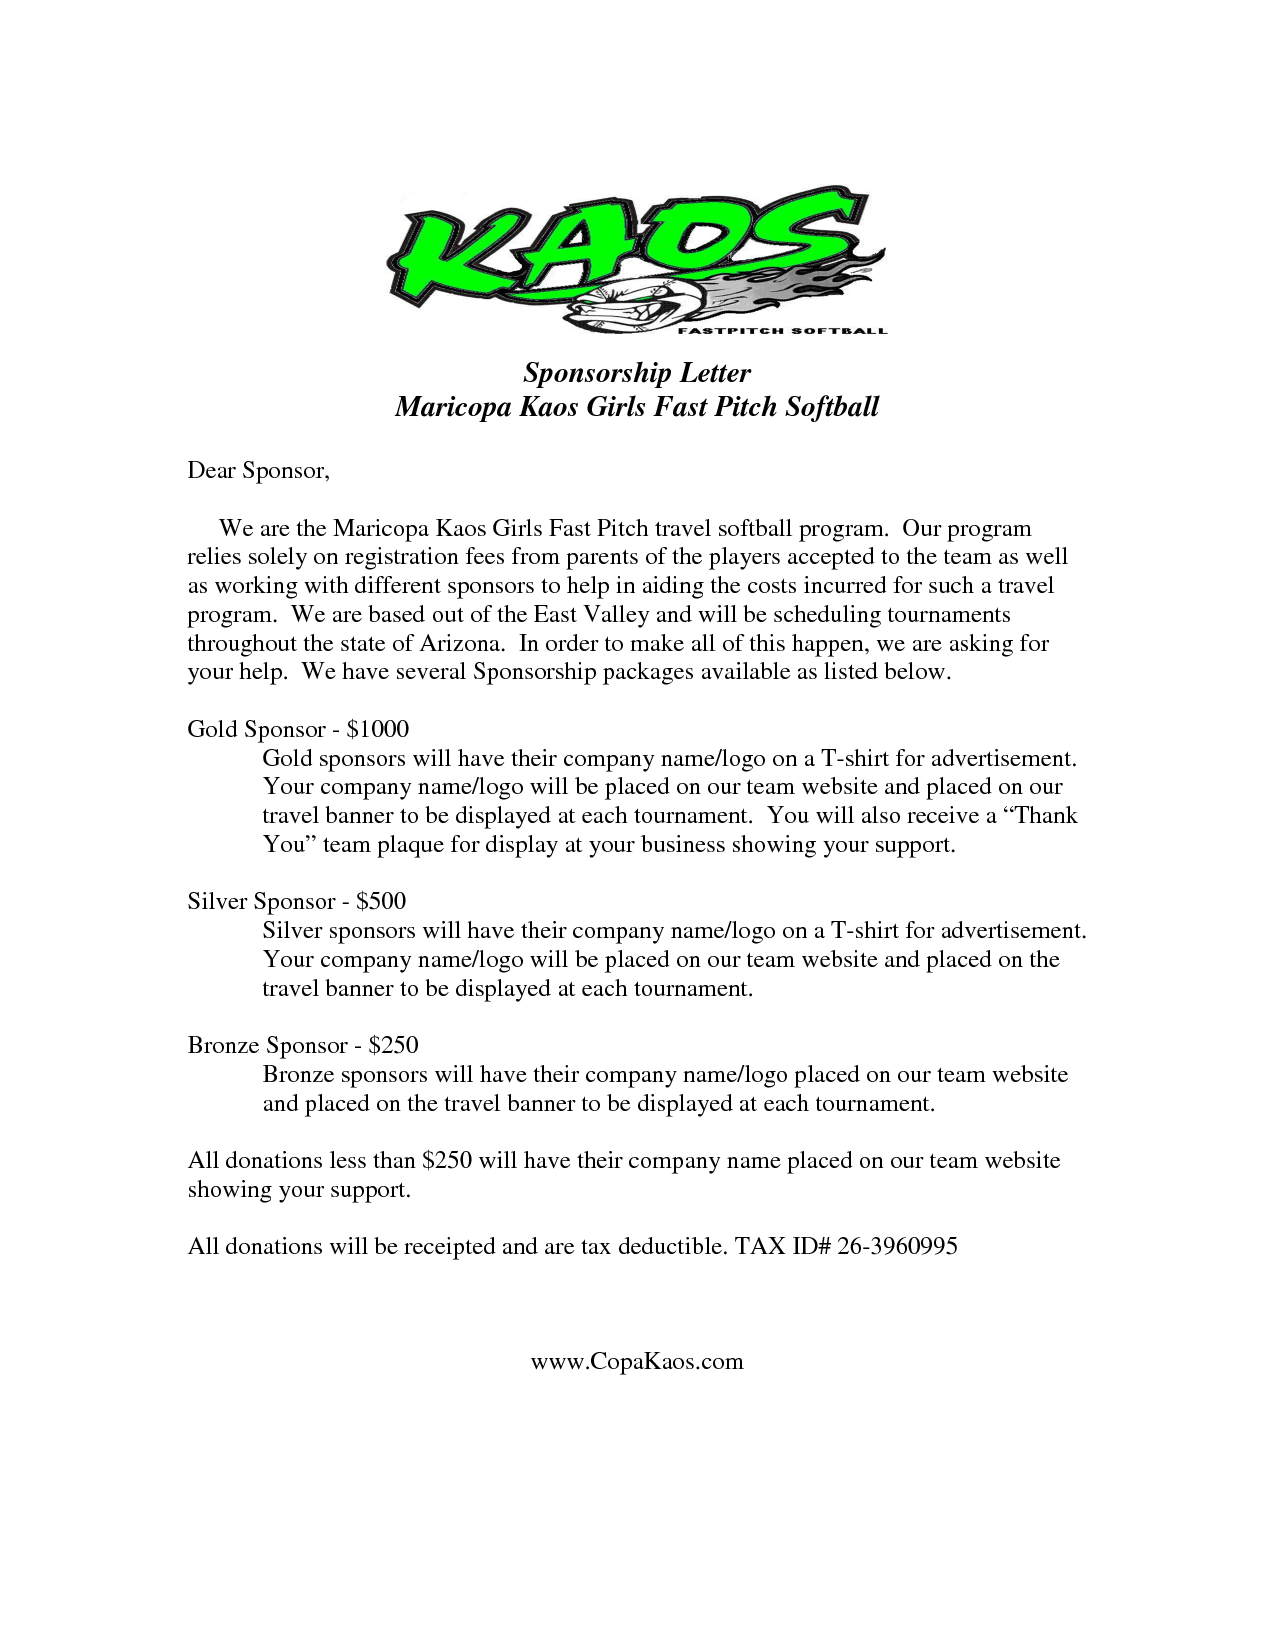 Event Sponsorship Letter Template - Image Result for Sample Sponsor Request Letter Donation